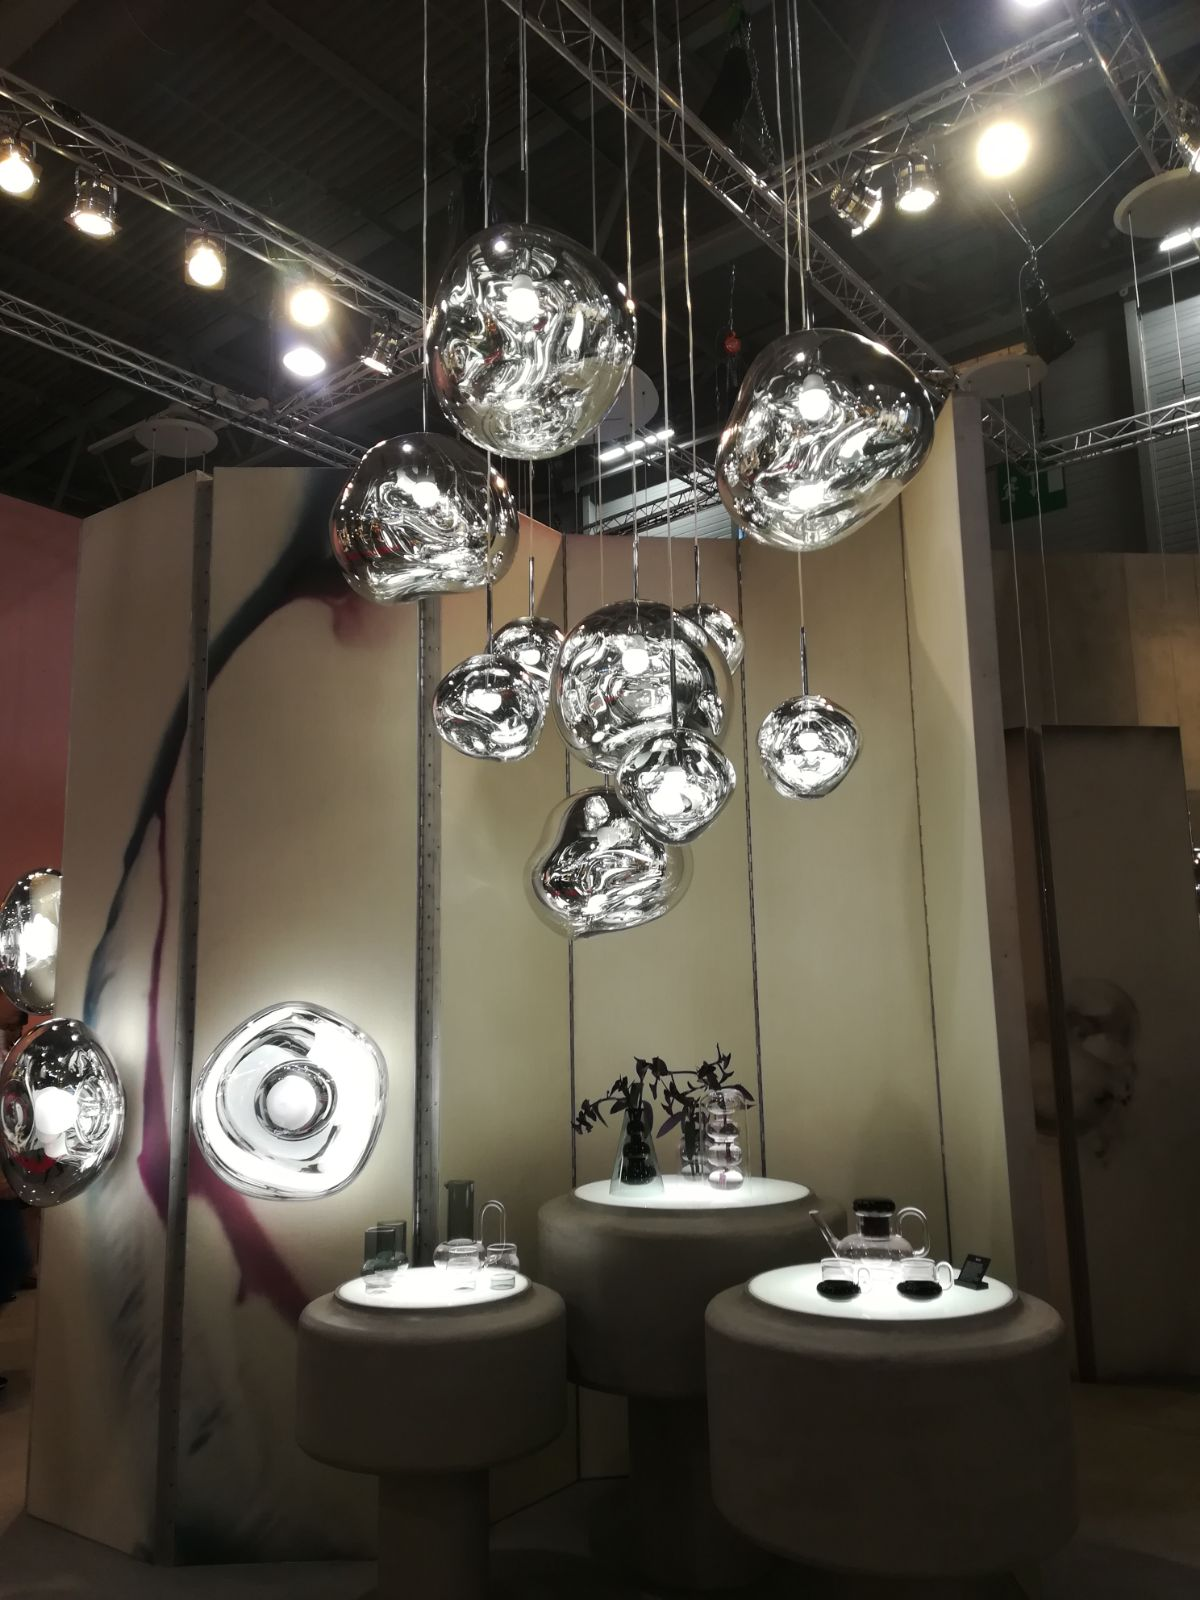 Let's Recap All The Best Moments from Maison et Objet 2017! (10) maison et objet 2017 Let's Recap All The Best Moments from Maison et Objet 2017! Lets Recap All The Best Moments from Maison et Objet 2017 10